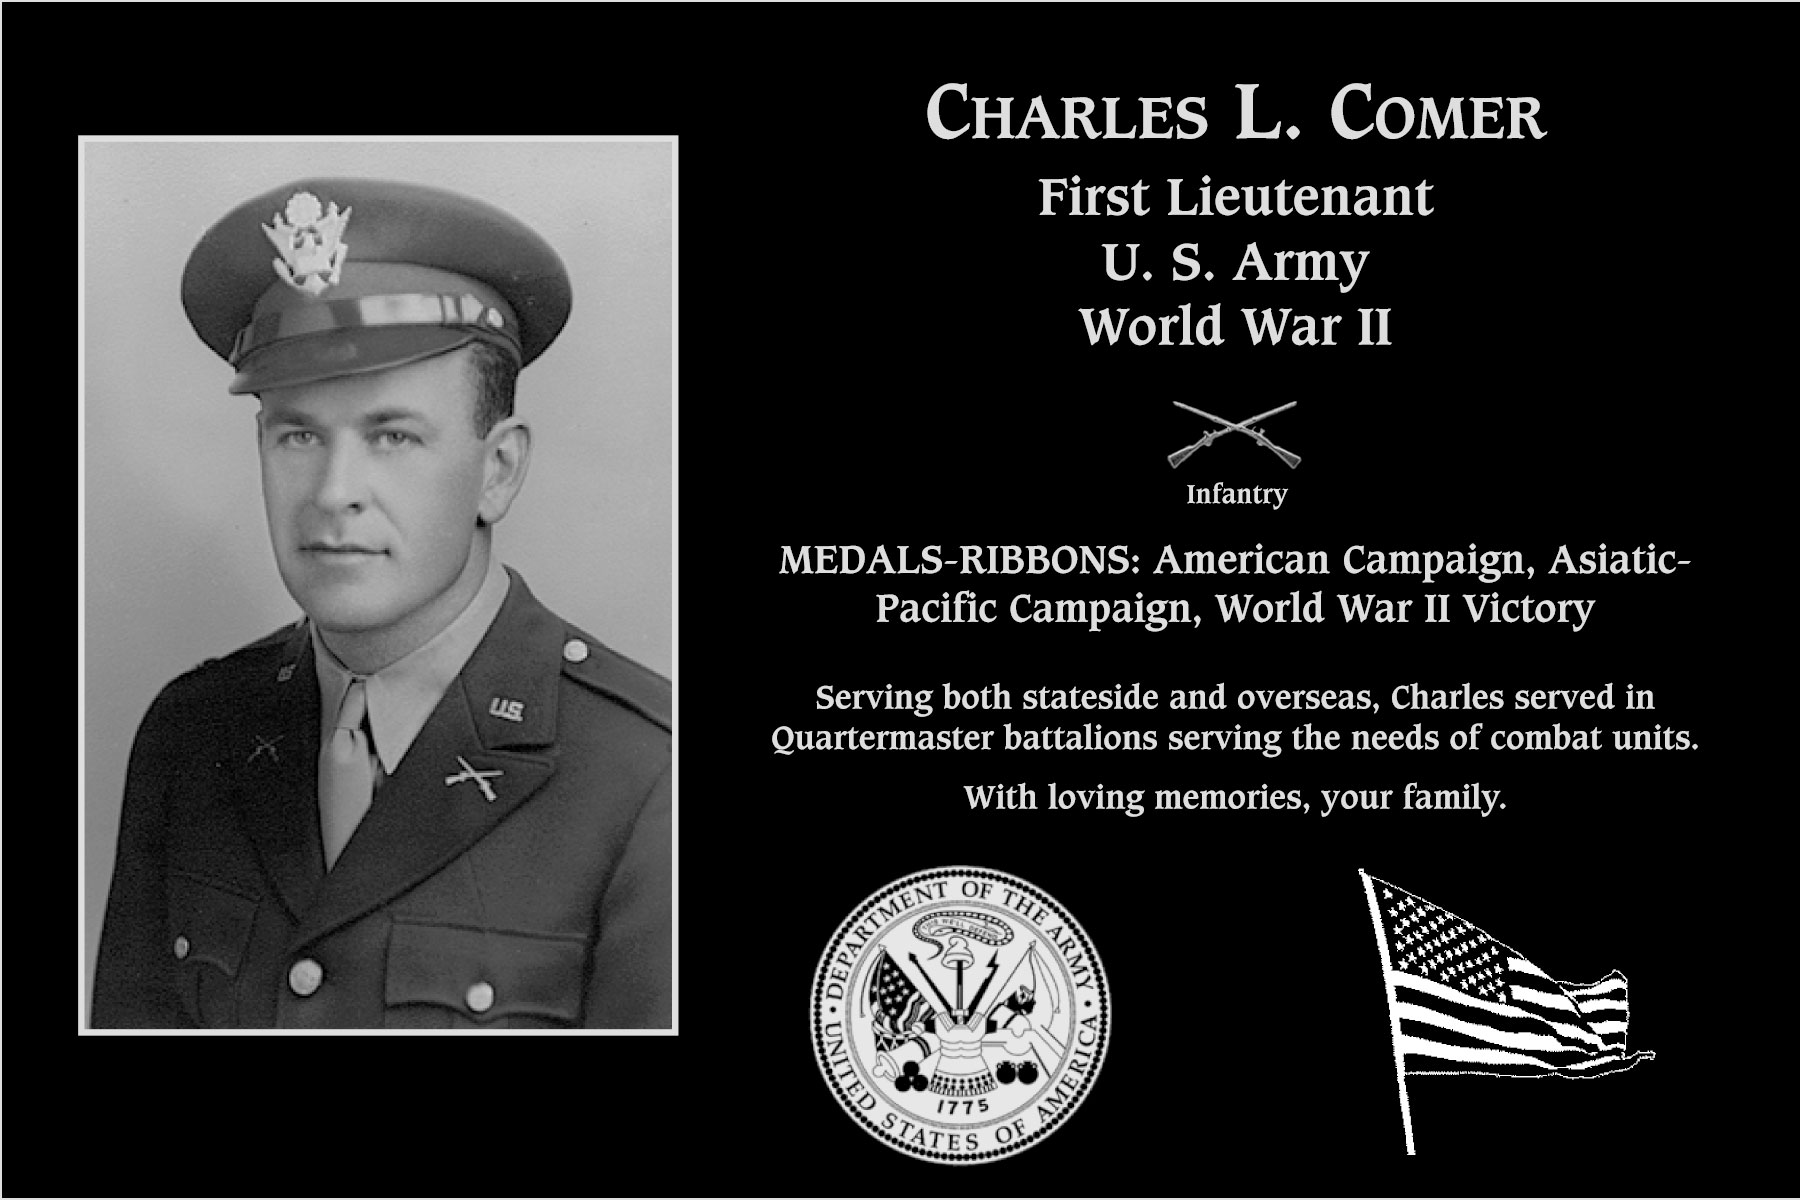 Charles L. Comer